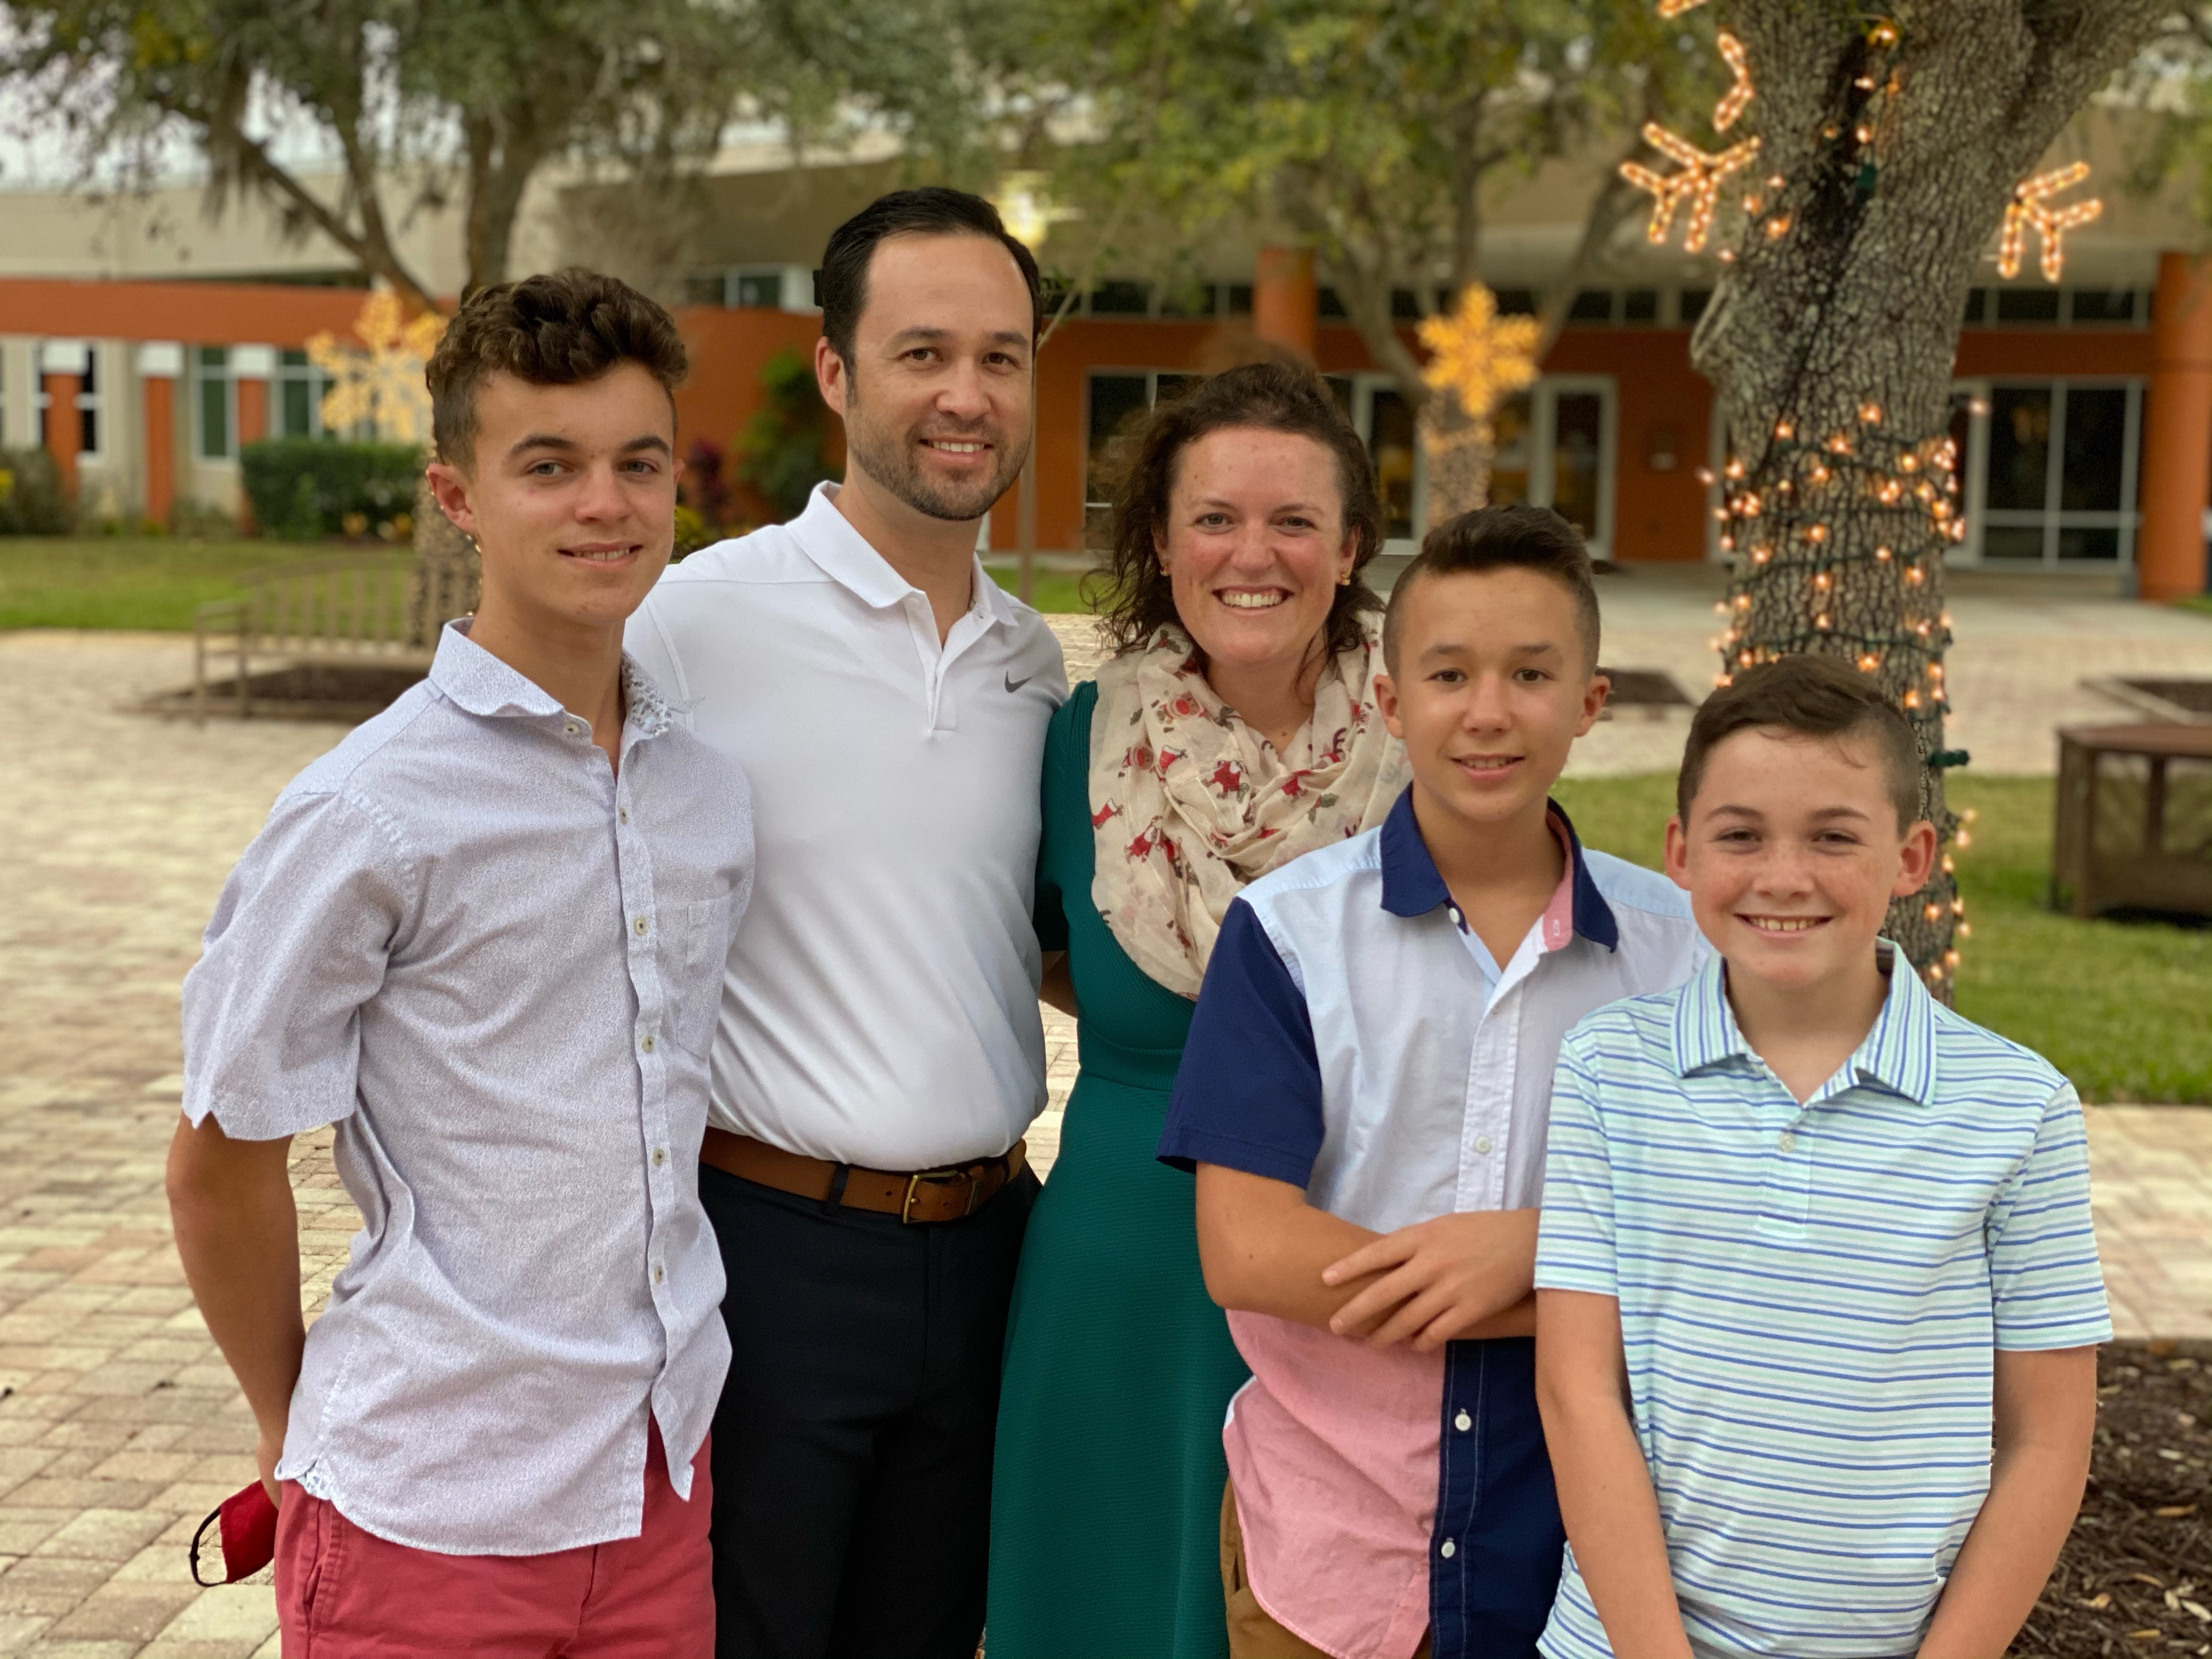 Dr. Crume and her family pictured left to right: Davis (15), Donald, '99, Allison, Dylan (13) and Donovan (12).